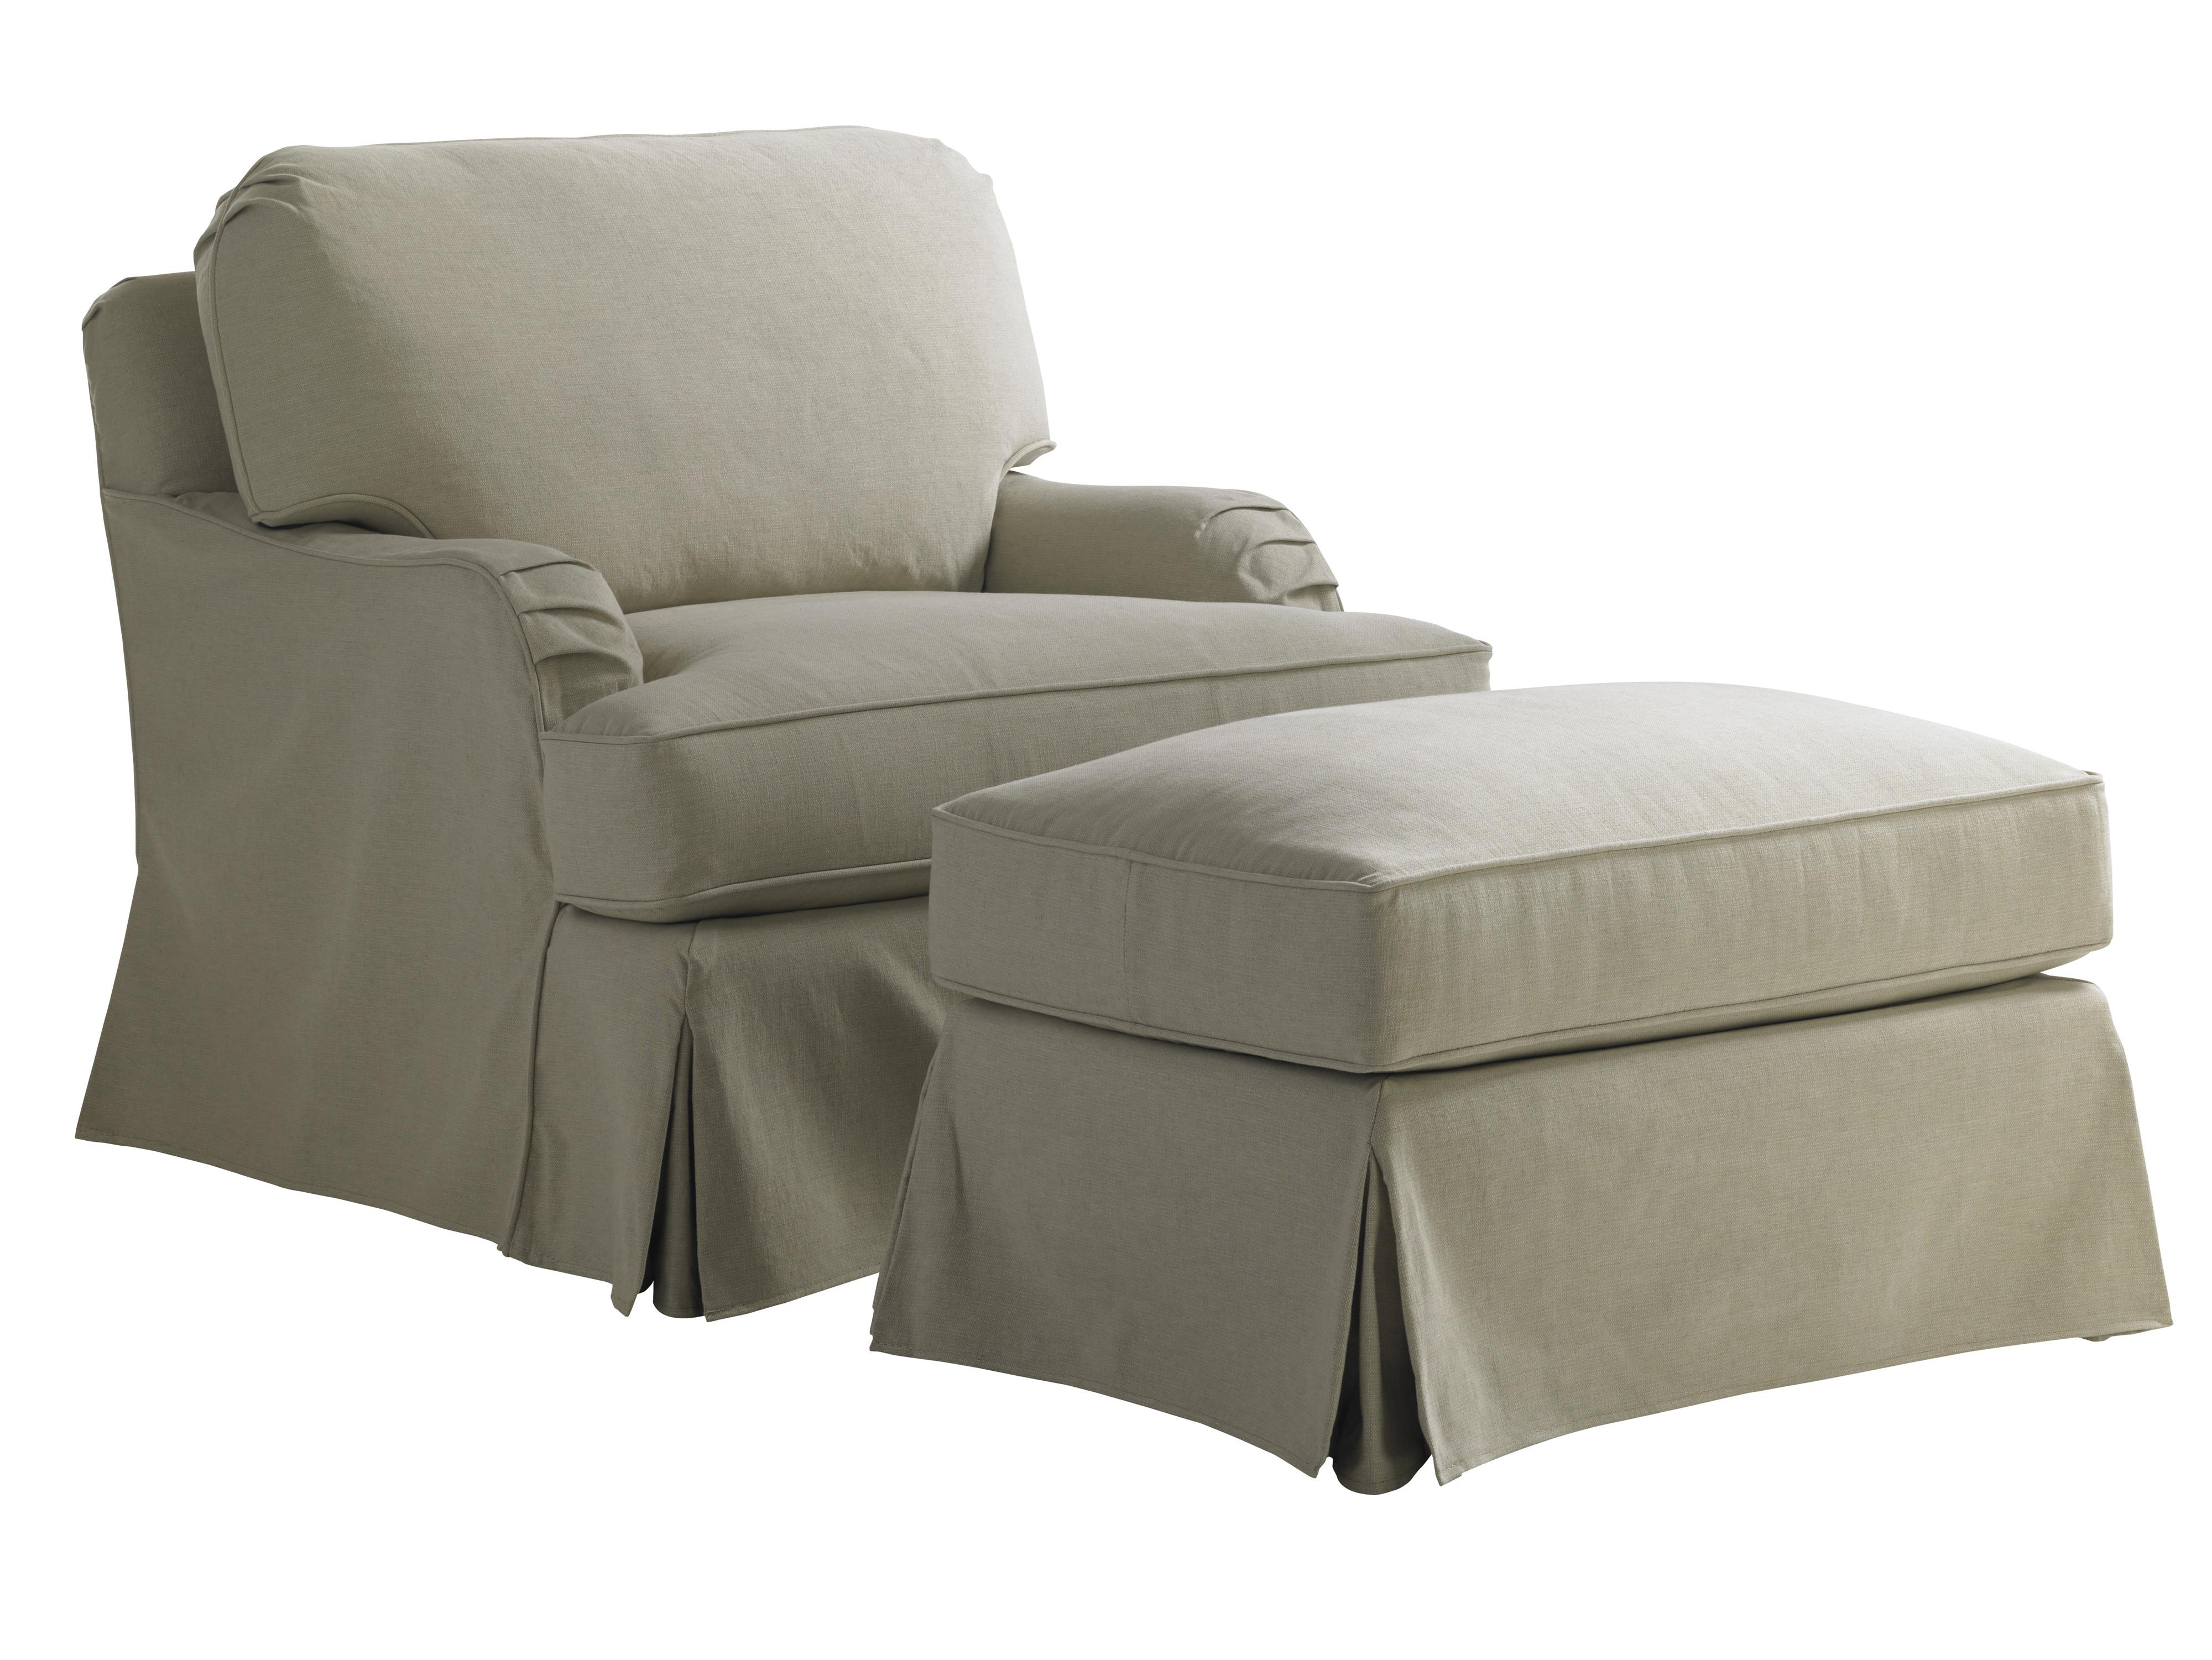 Coventry Hills Stowe Slipcover Chair and Ottoman by Lexington at Fisher Home Furnishings